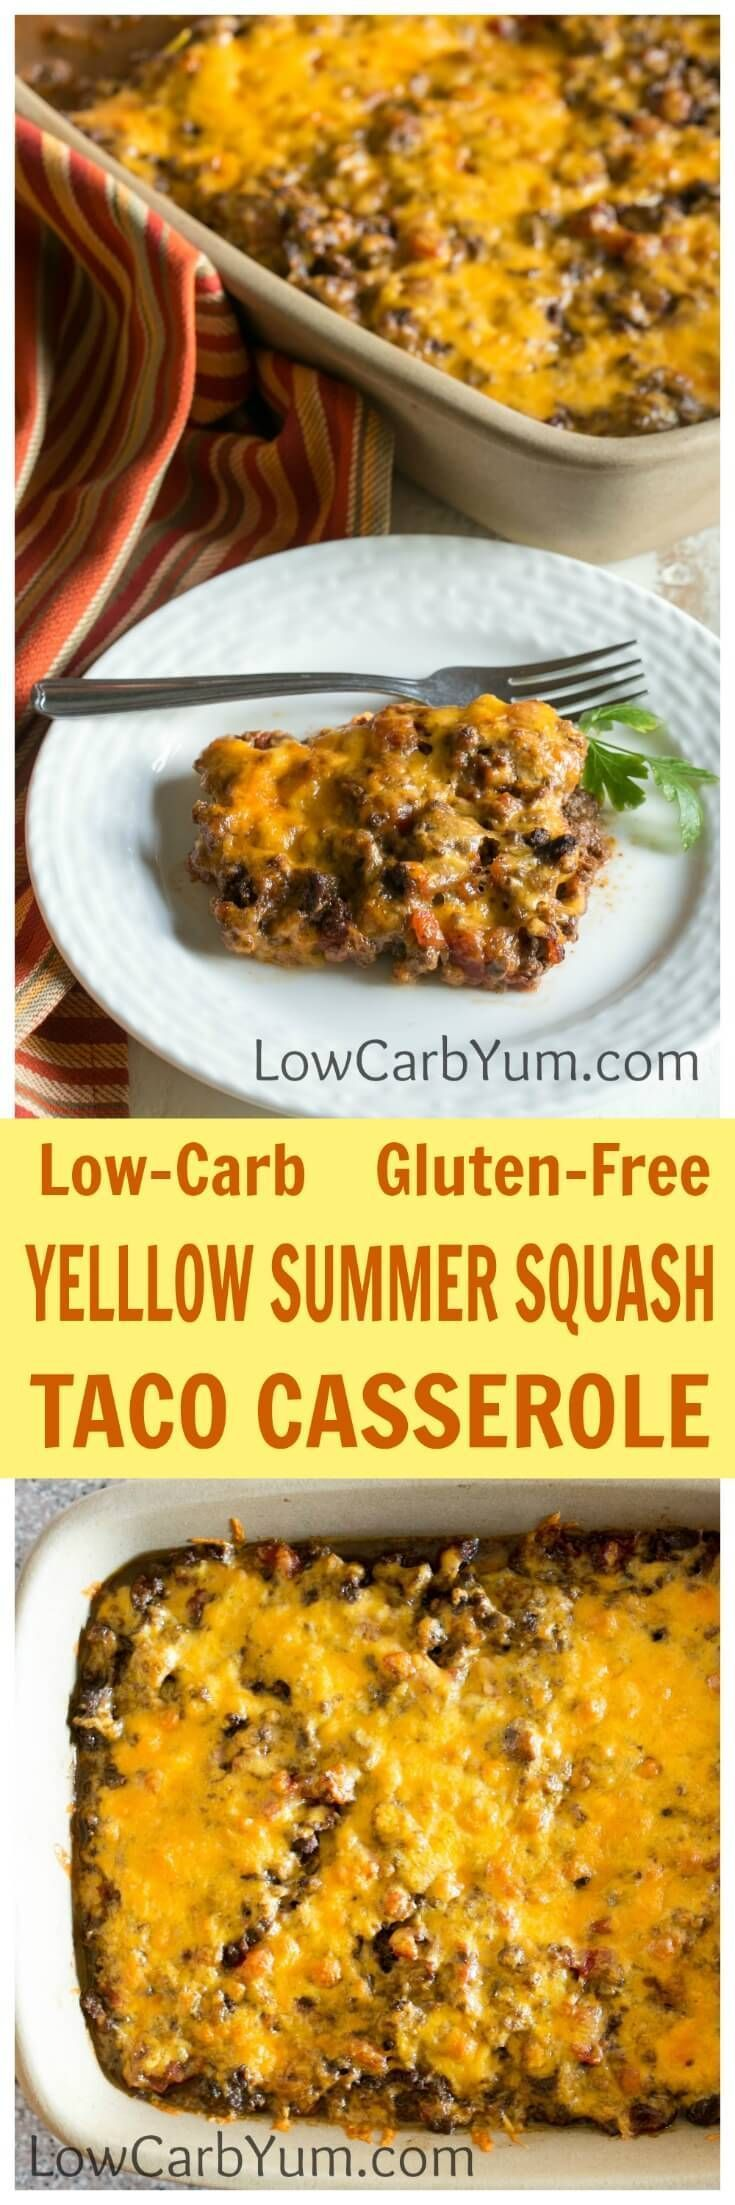 A low carb yellow summer squash taco casserole that's quick and easy to prepare. It's a yummy way  to use up a bumper crop of summer squash.